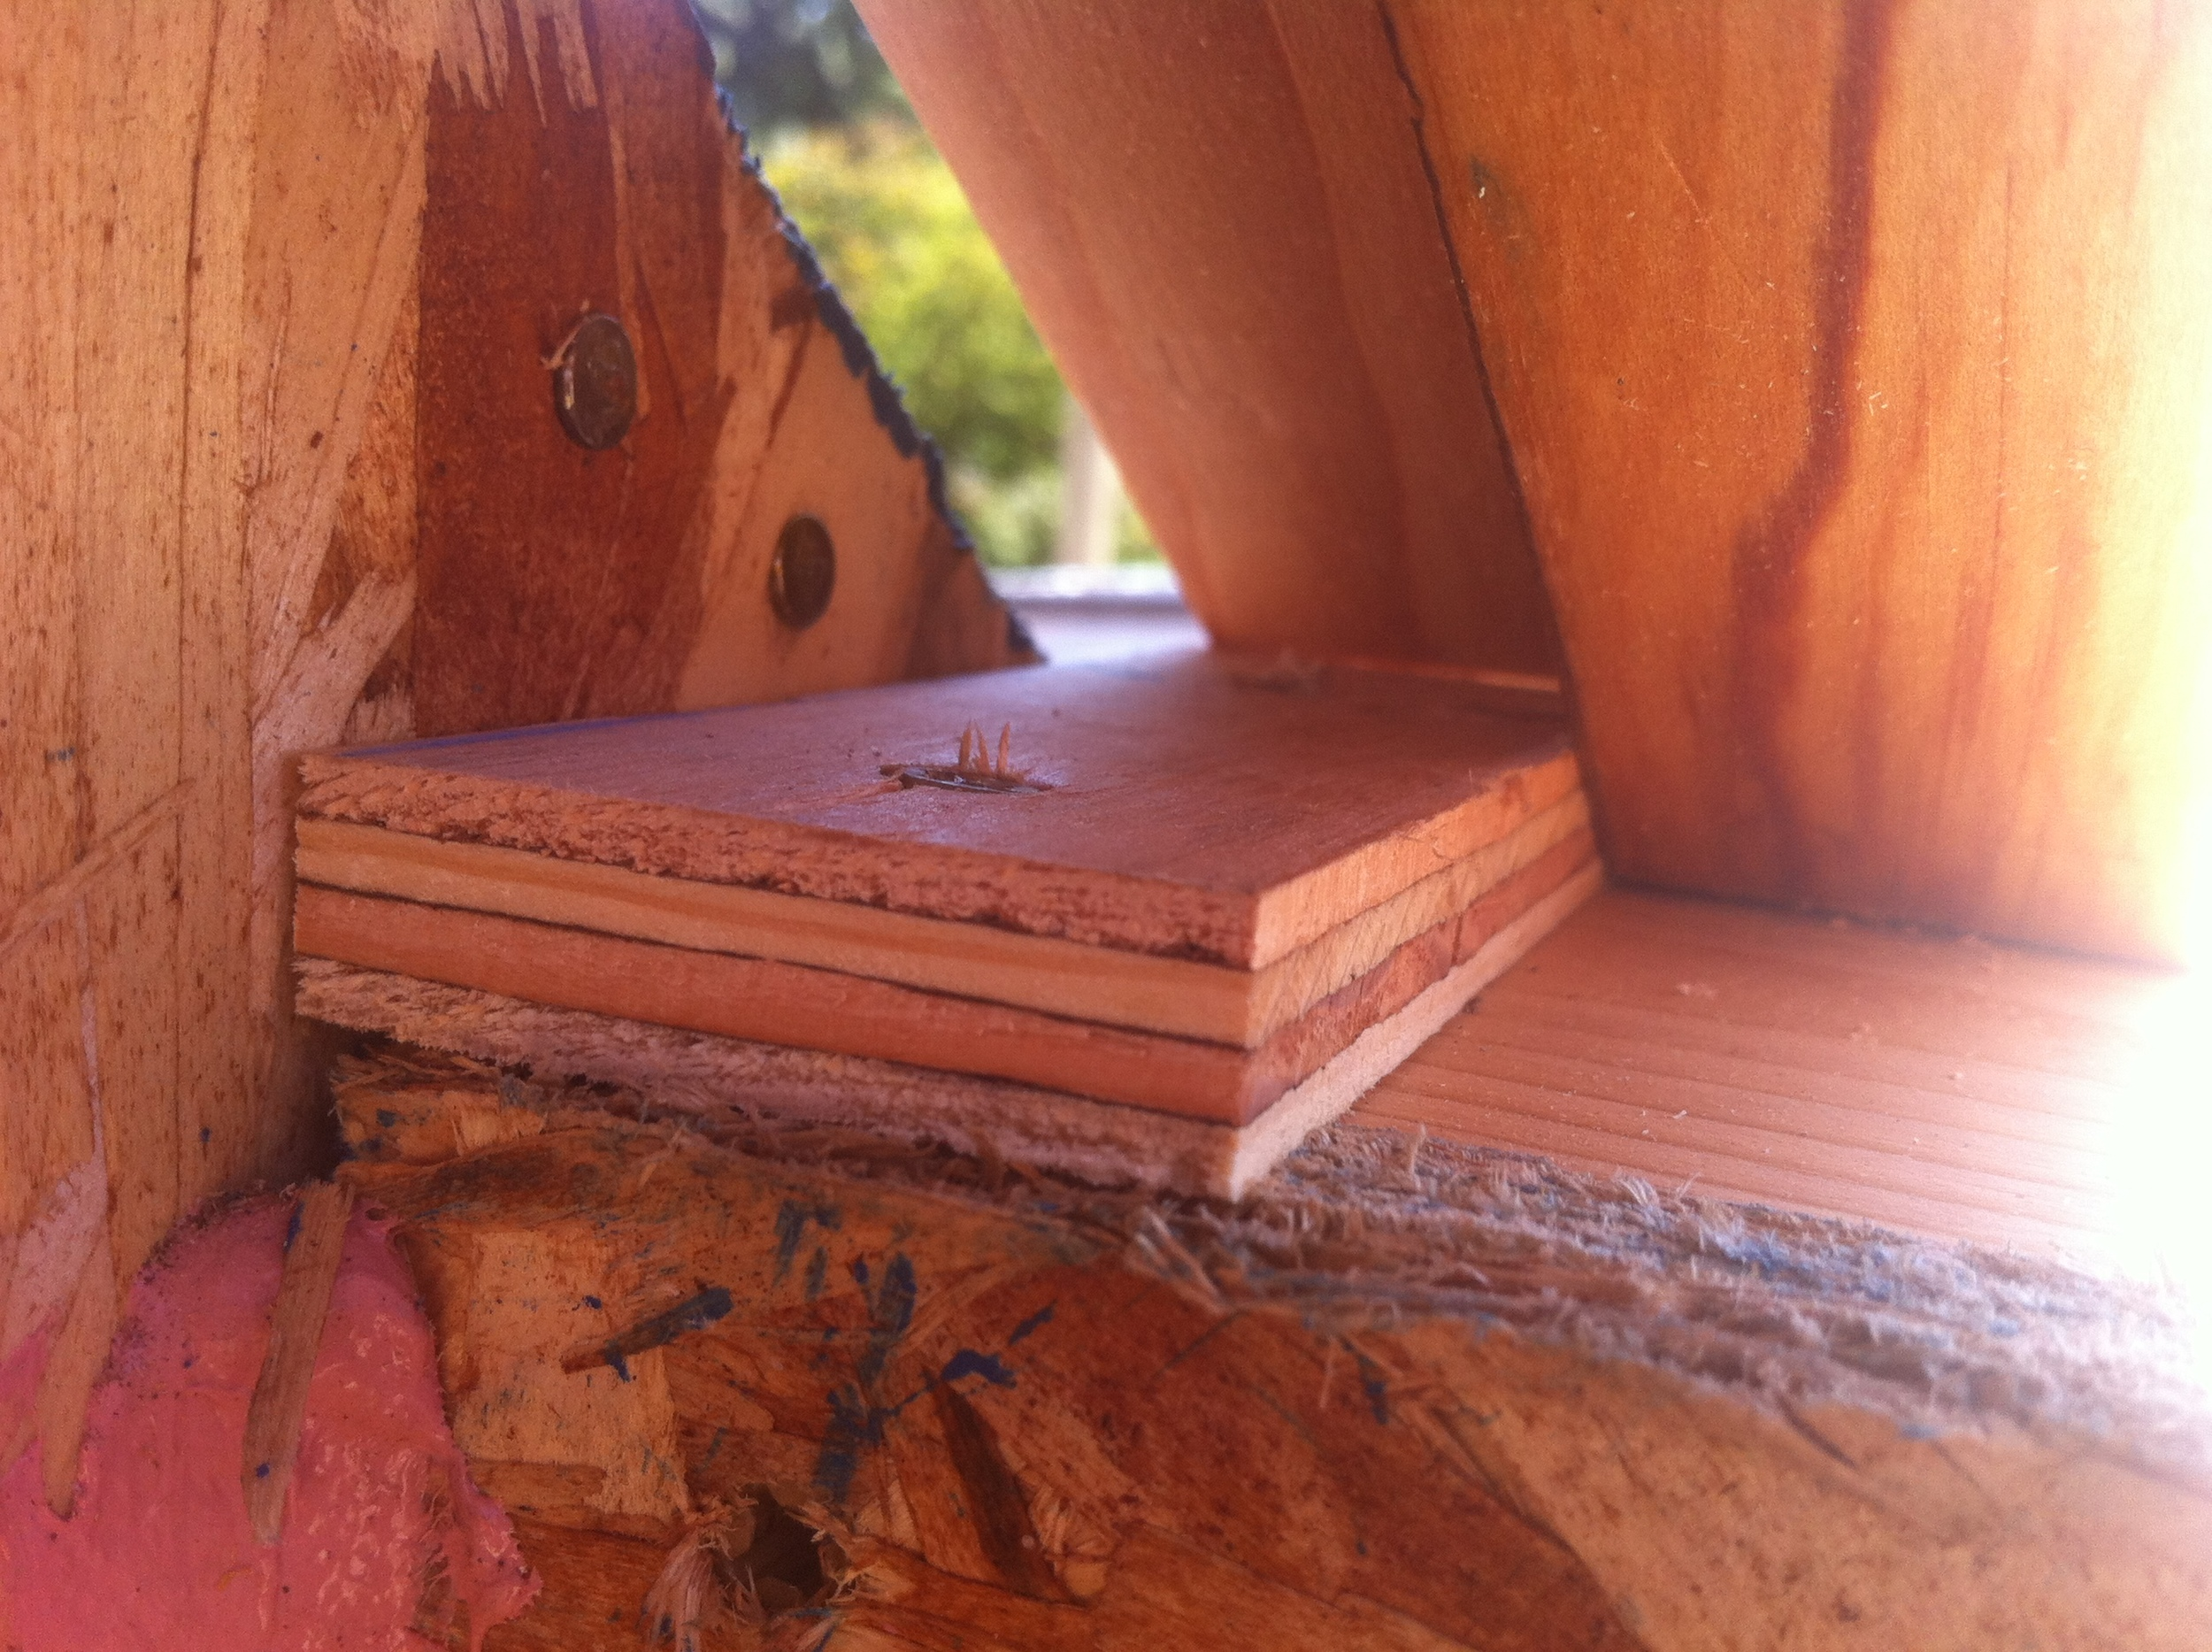 Little-Shims-for-End-Rafters.jpg